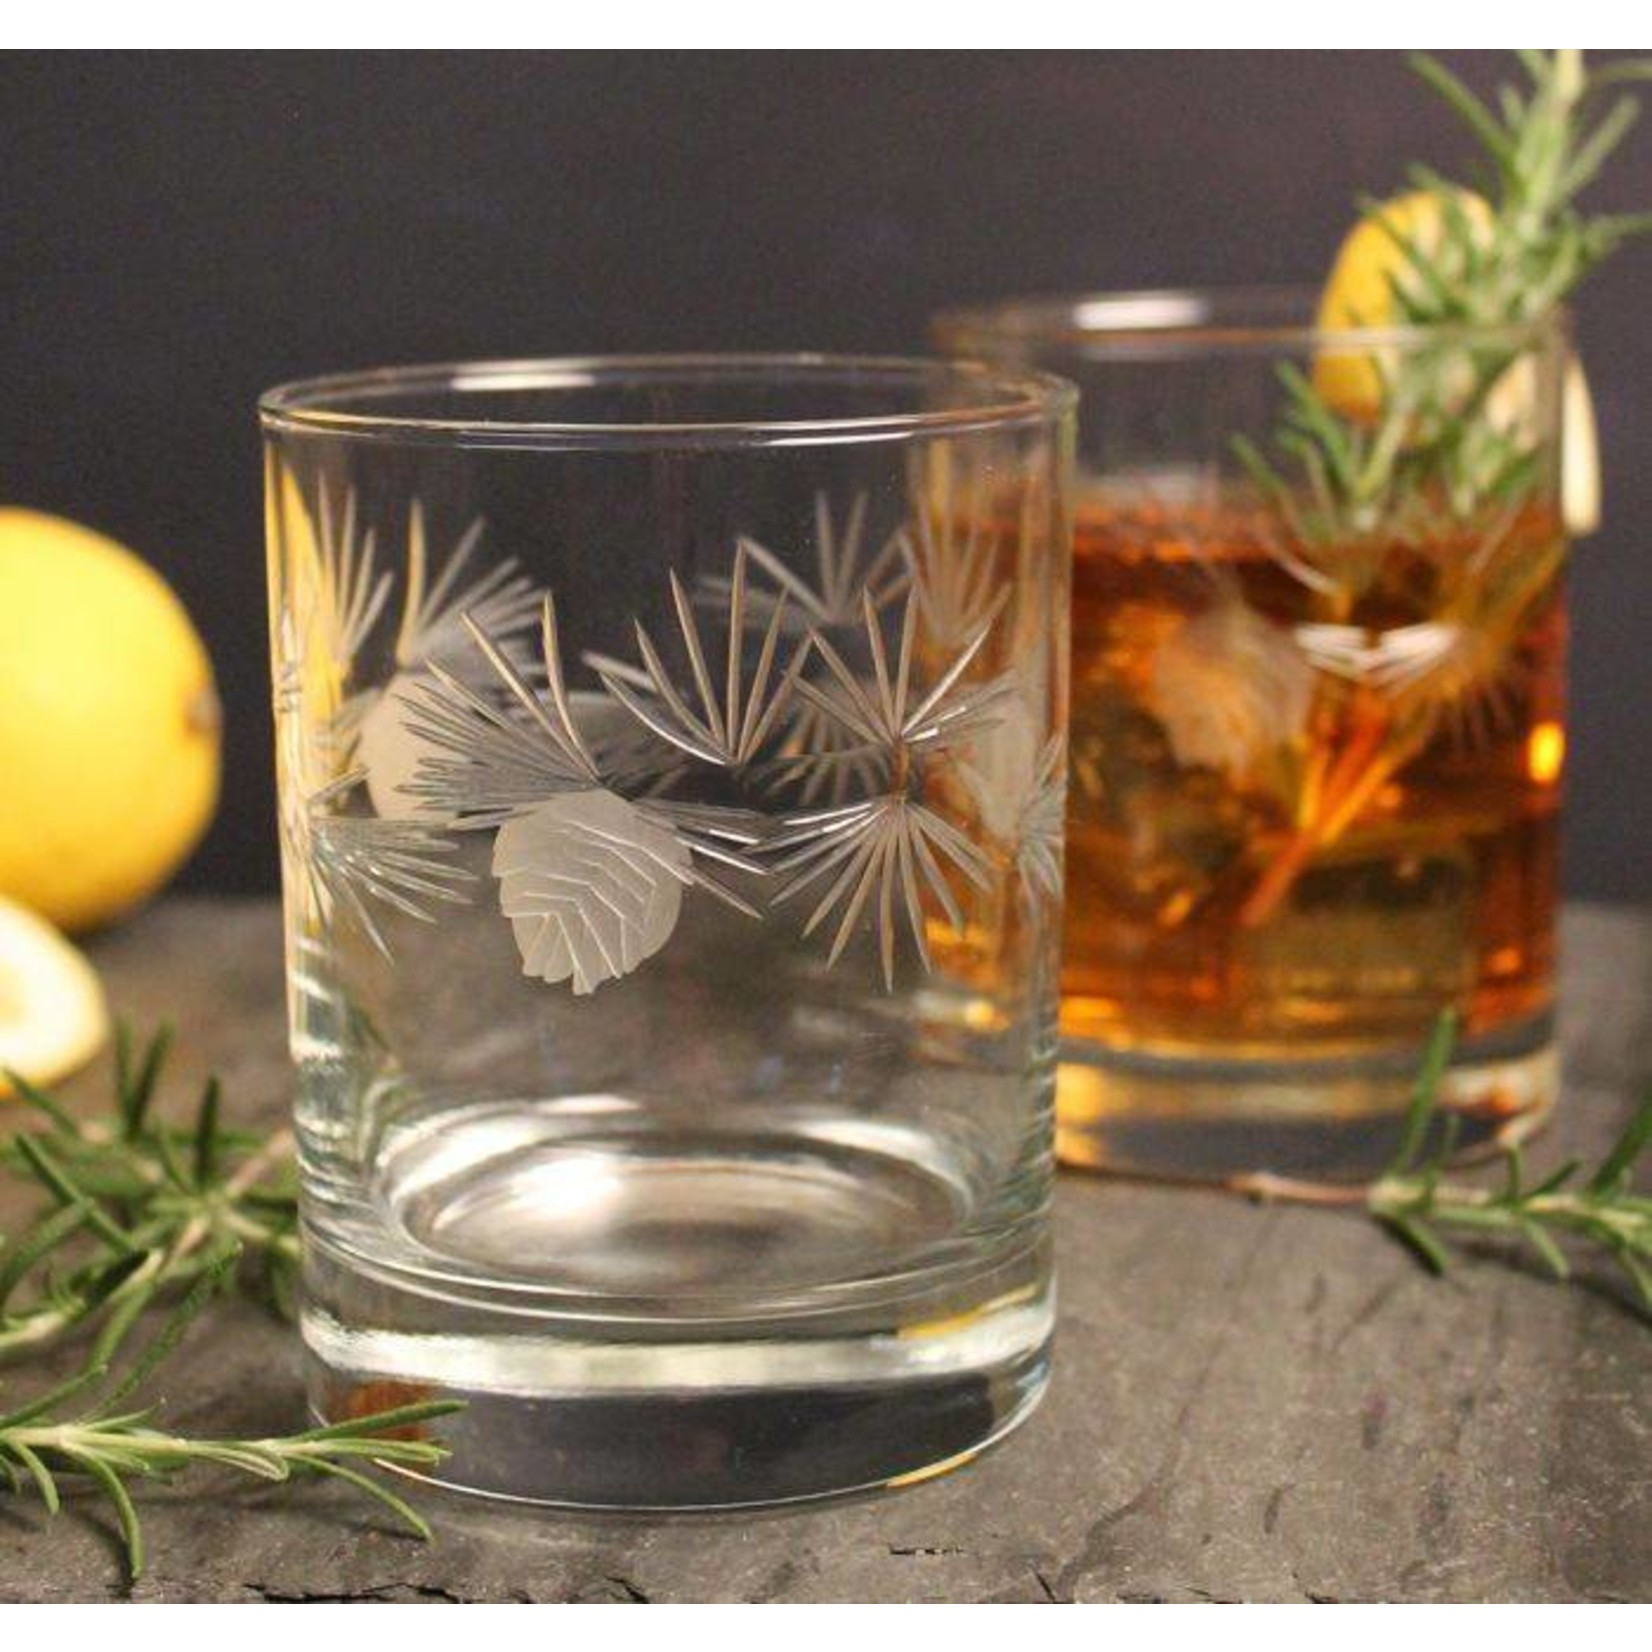 Icy Pine 14oz Double Old Fashioned Short Glass